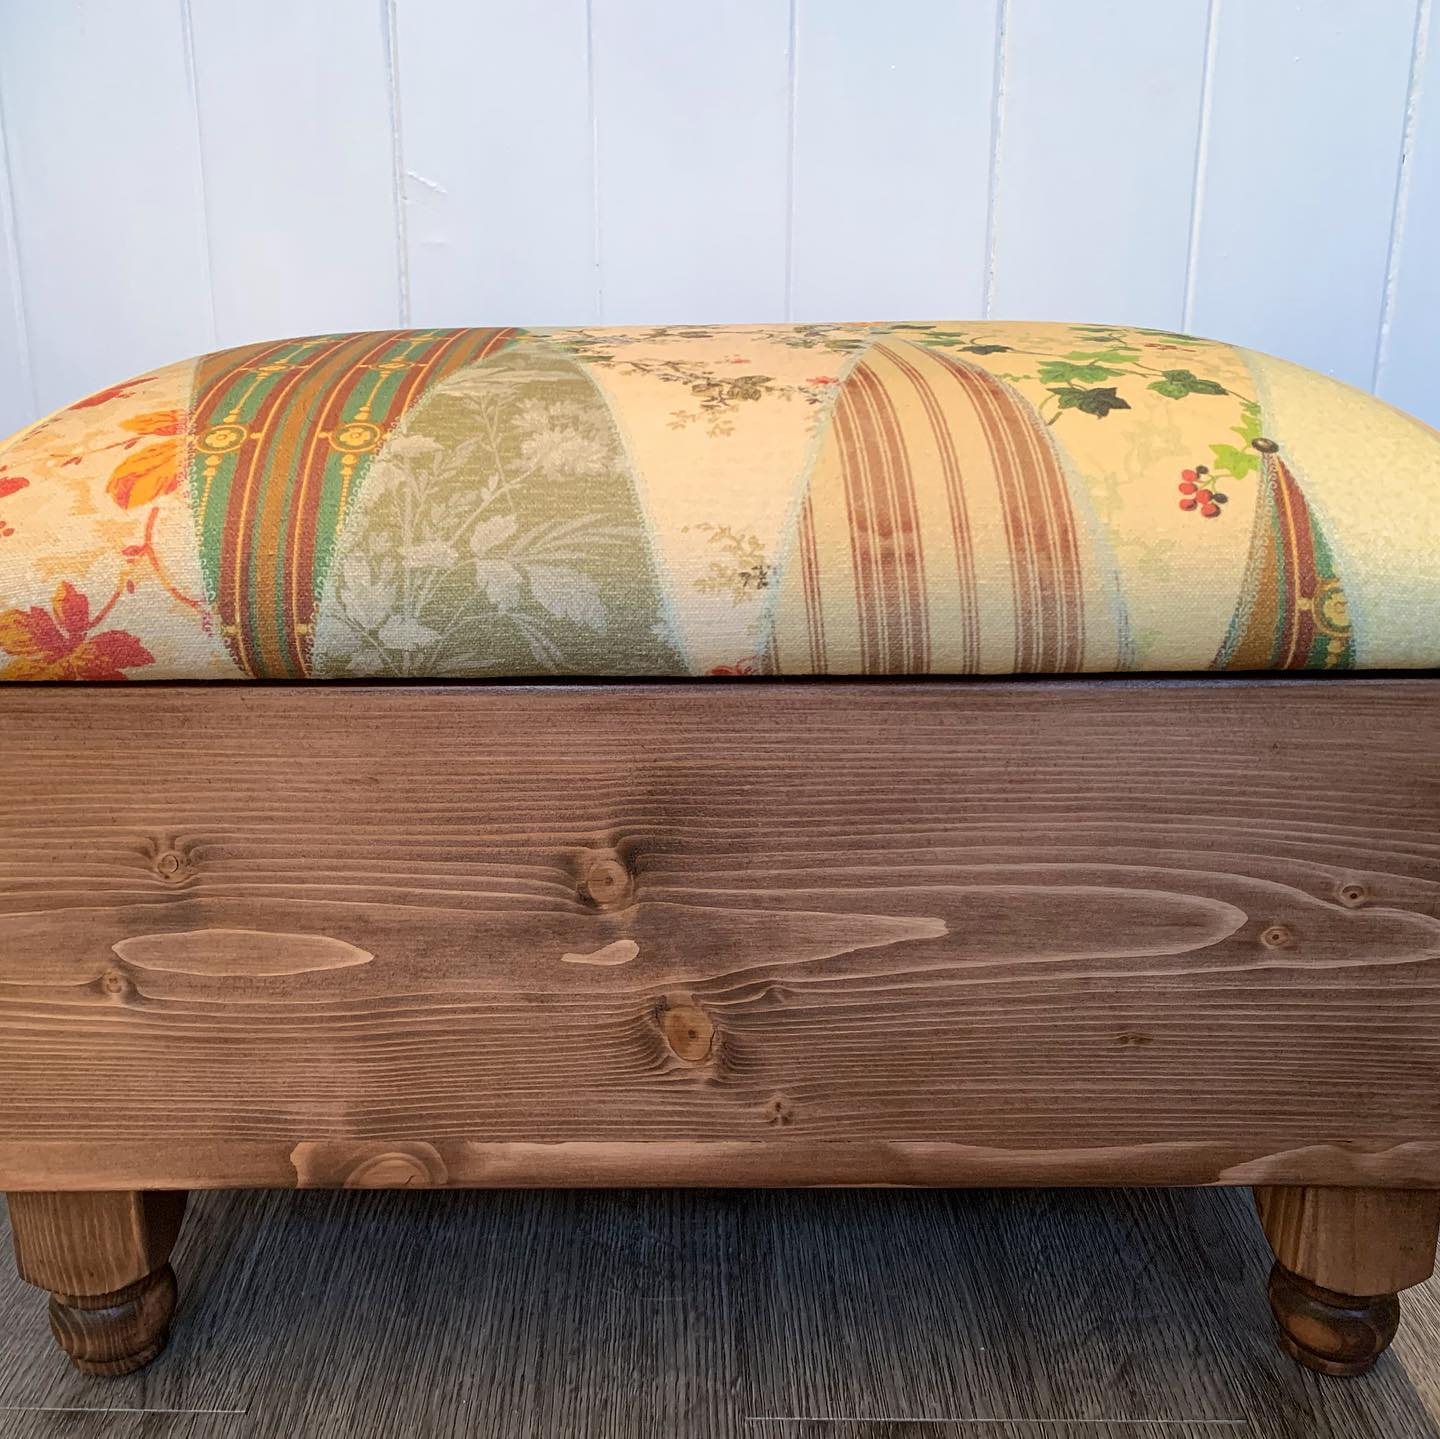 A couple of designs being added to our website this week!#escapetothechateau #tartan #wallpapermuseum #handcrafted #homewares #ottoman #homedecor #storage #reclaimed #wood #shopsmall #shophandmade